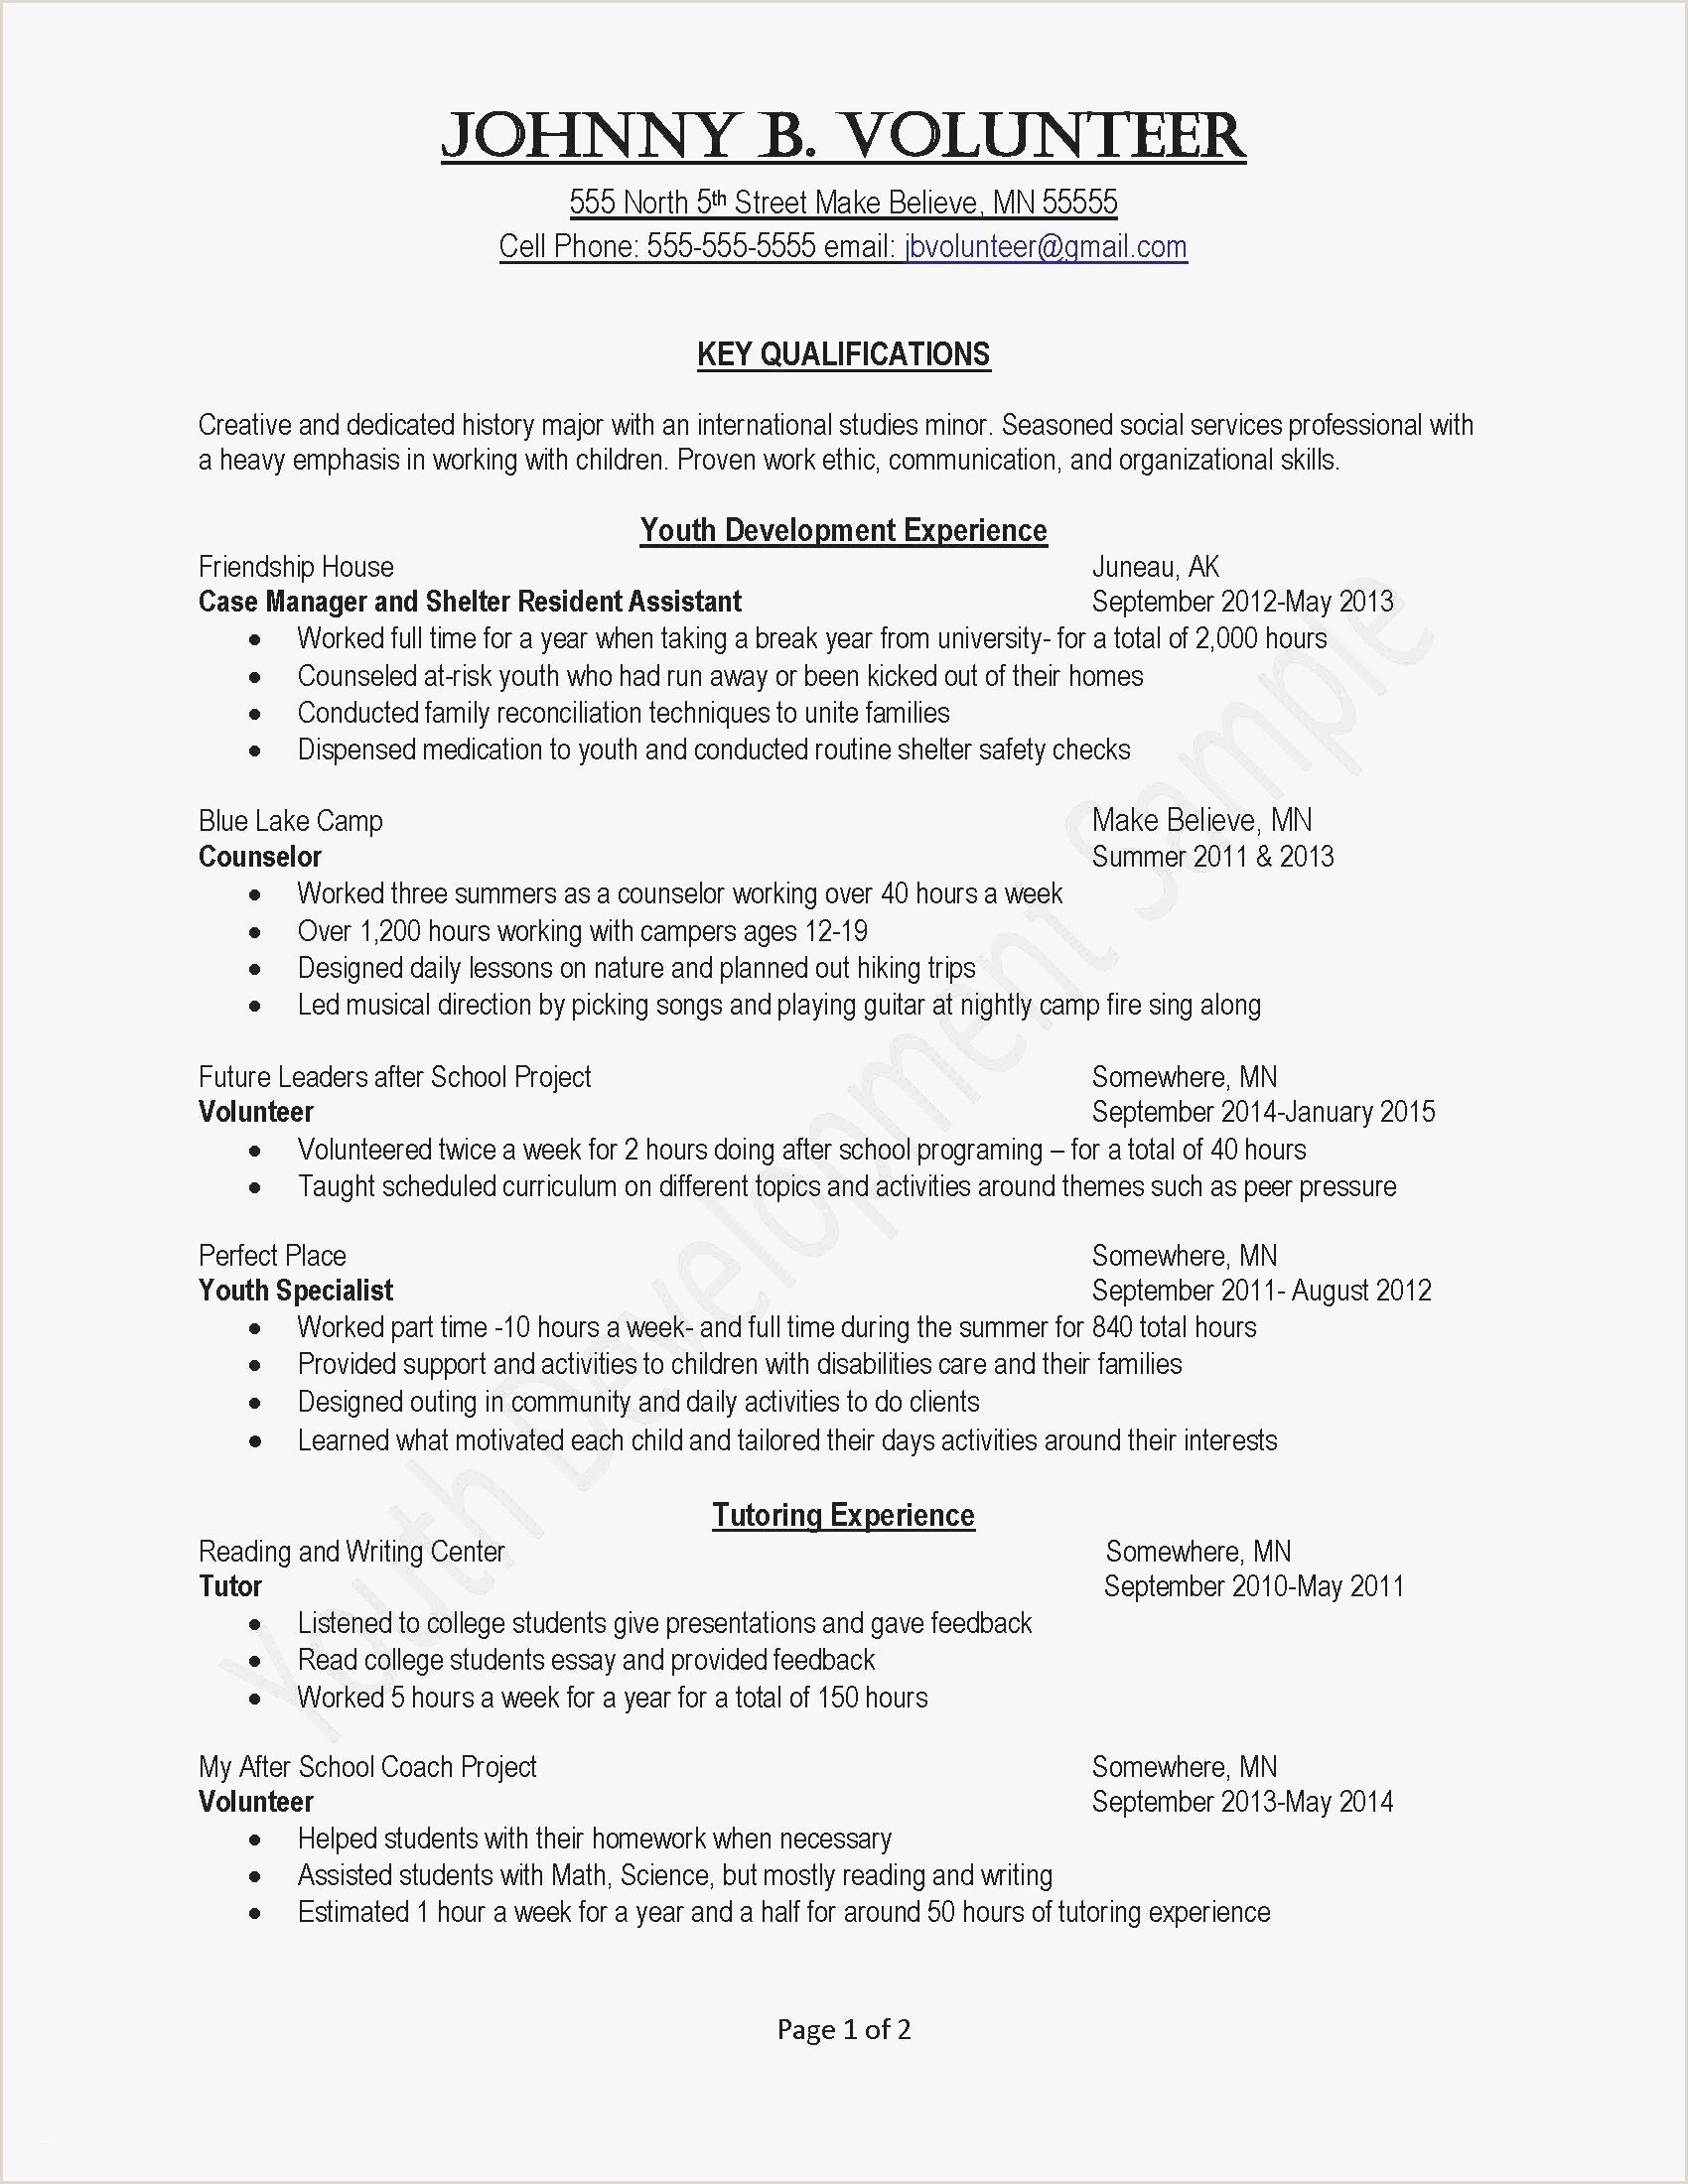 Template for Cover Letter for Teaching Position Samples